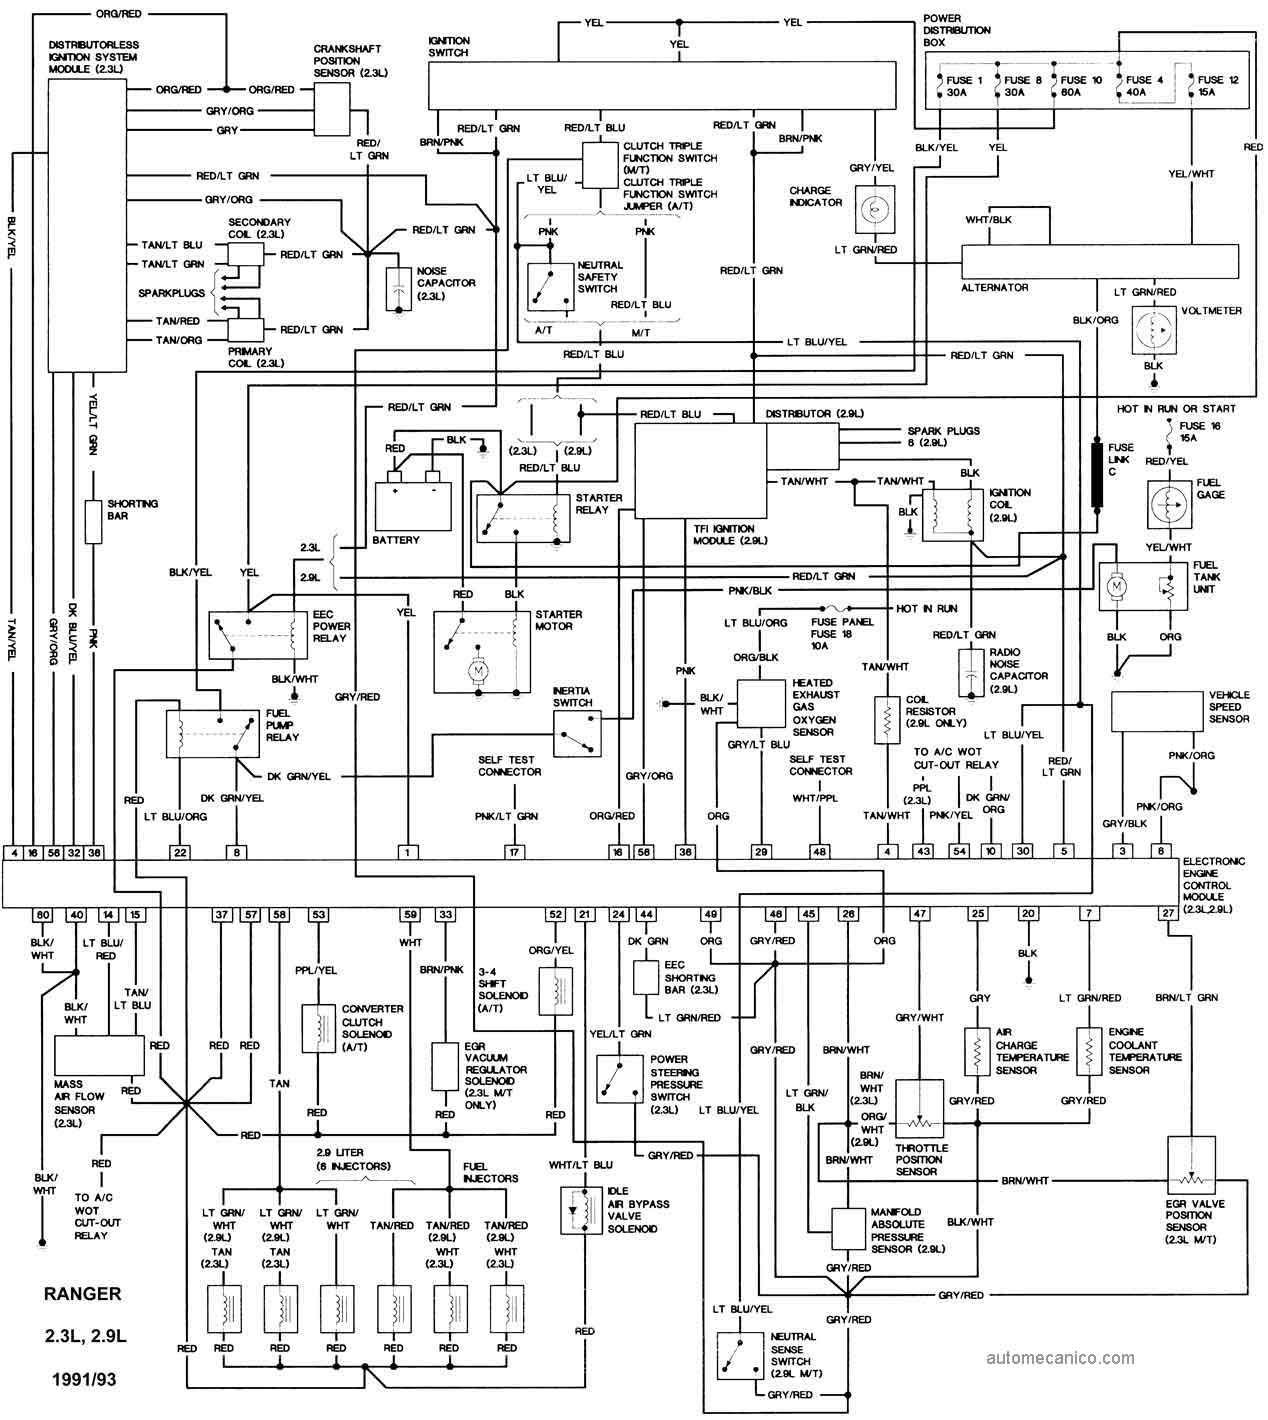 85 Ford Bronco Wiring Diagram Library 1990 Ii 1985 Images Gallery